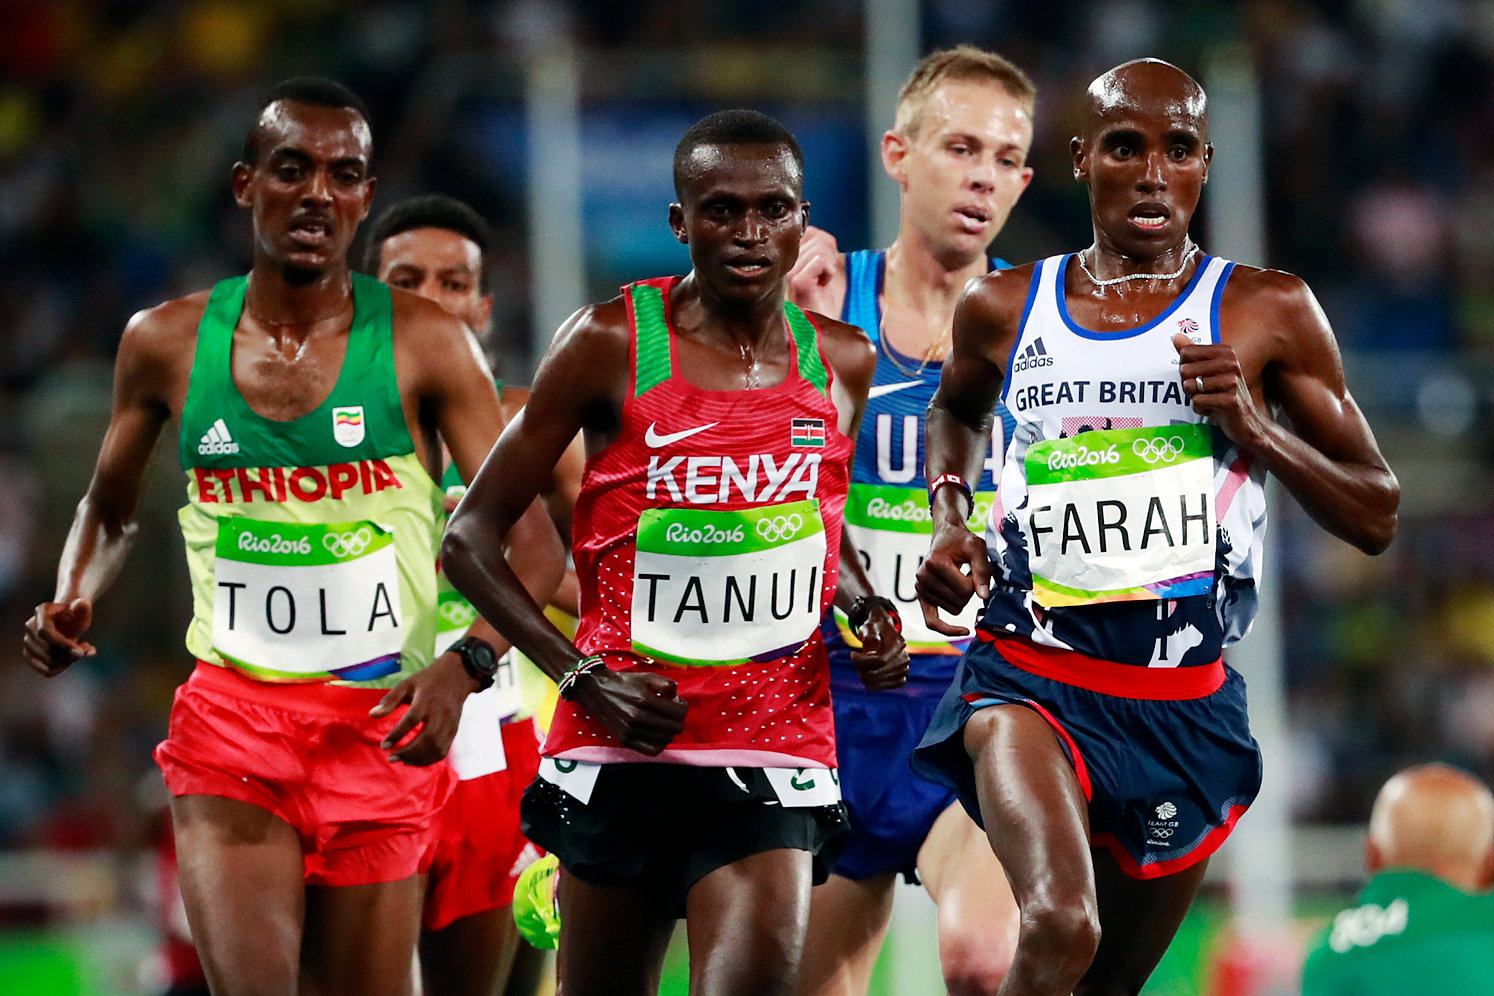 Britain's Mo Farah, right, leads the 10,000m field in Rio